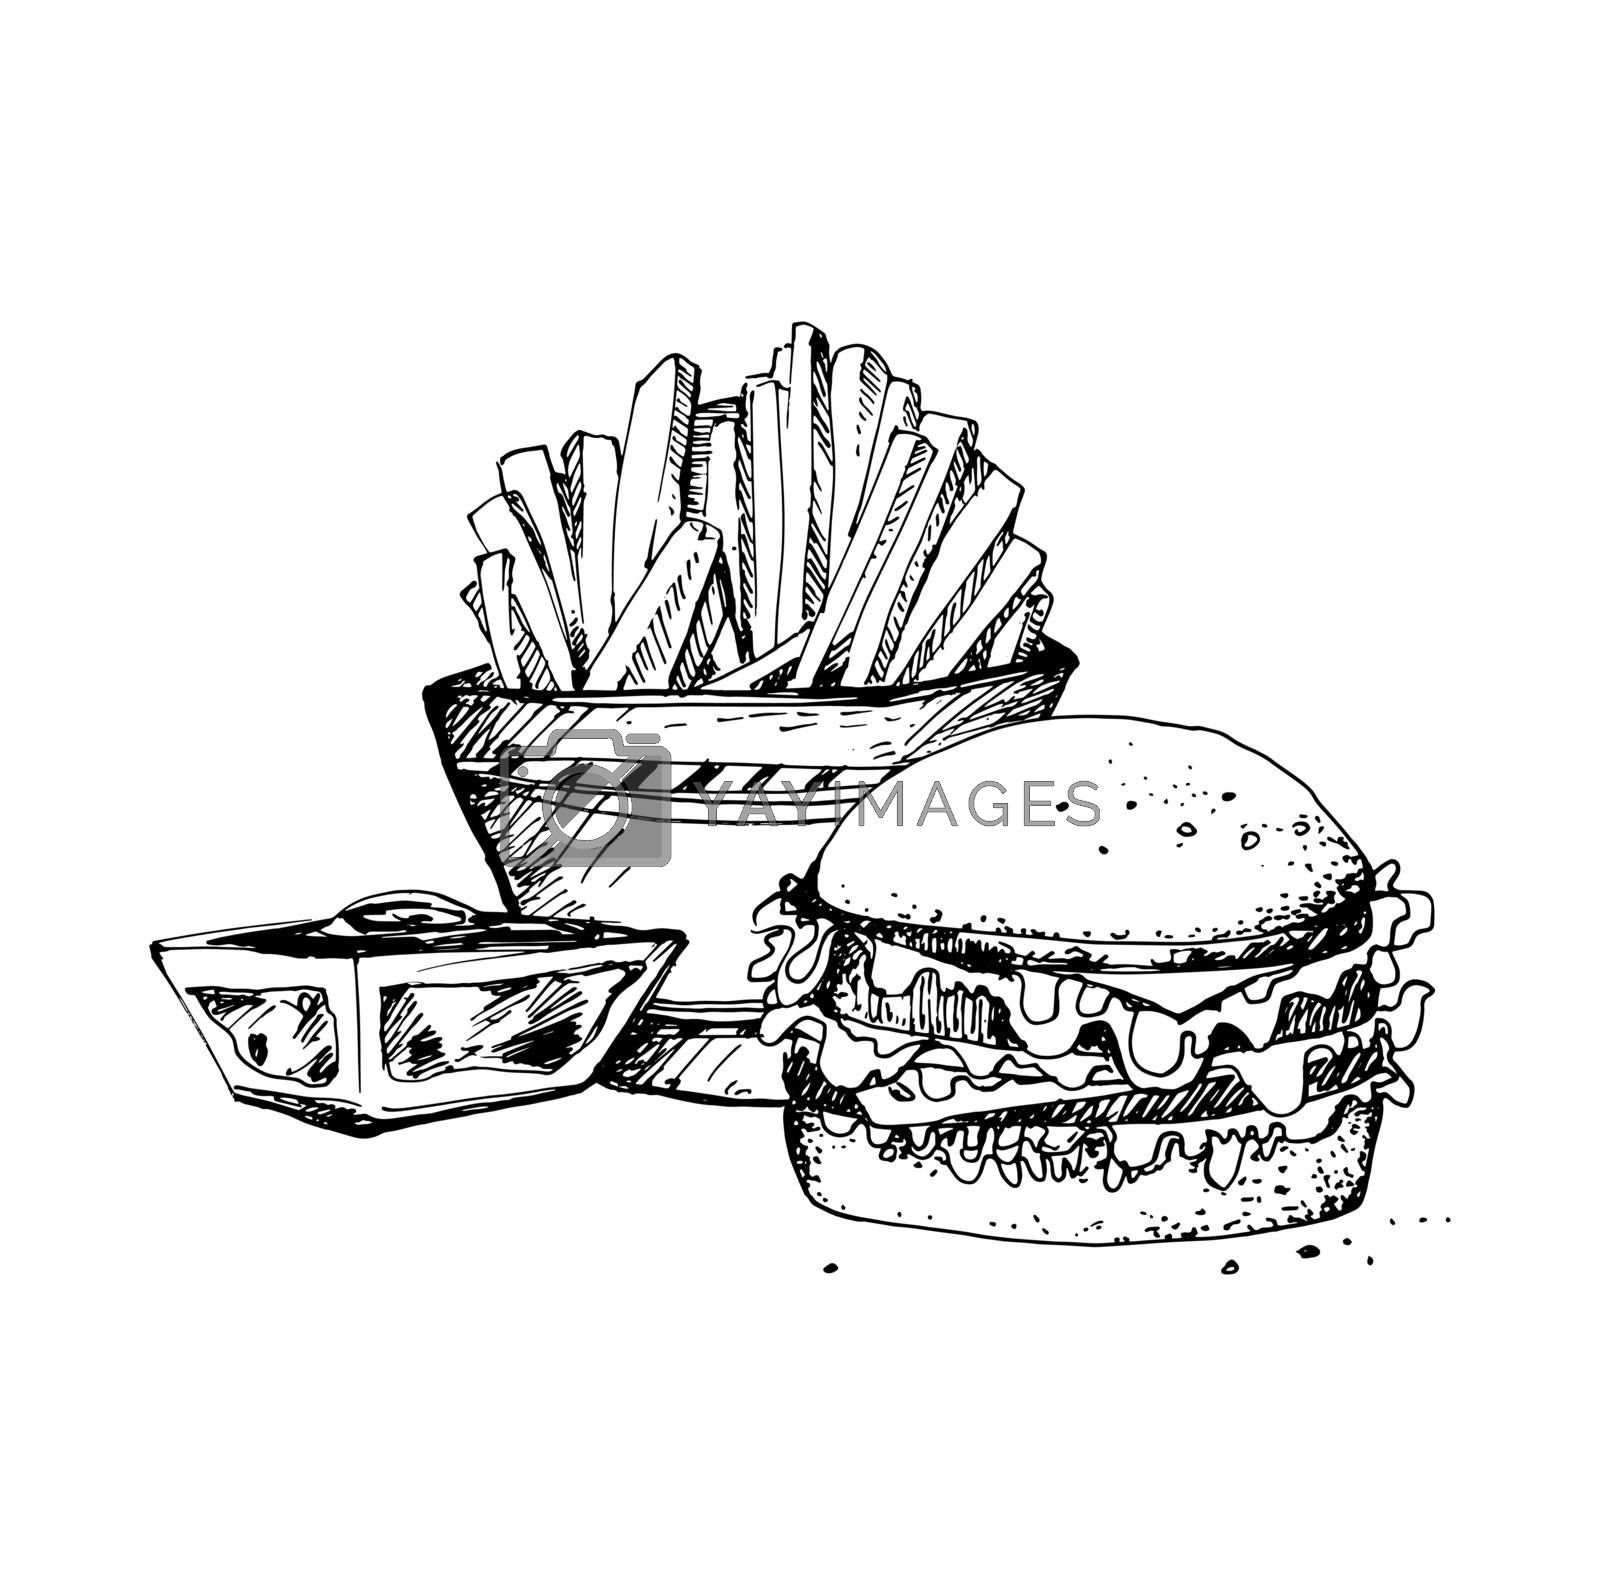 Hand Drawn Sketch of Fast Food. Vintage Sketch. Great for Banner, Poster